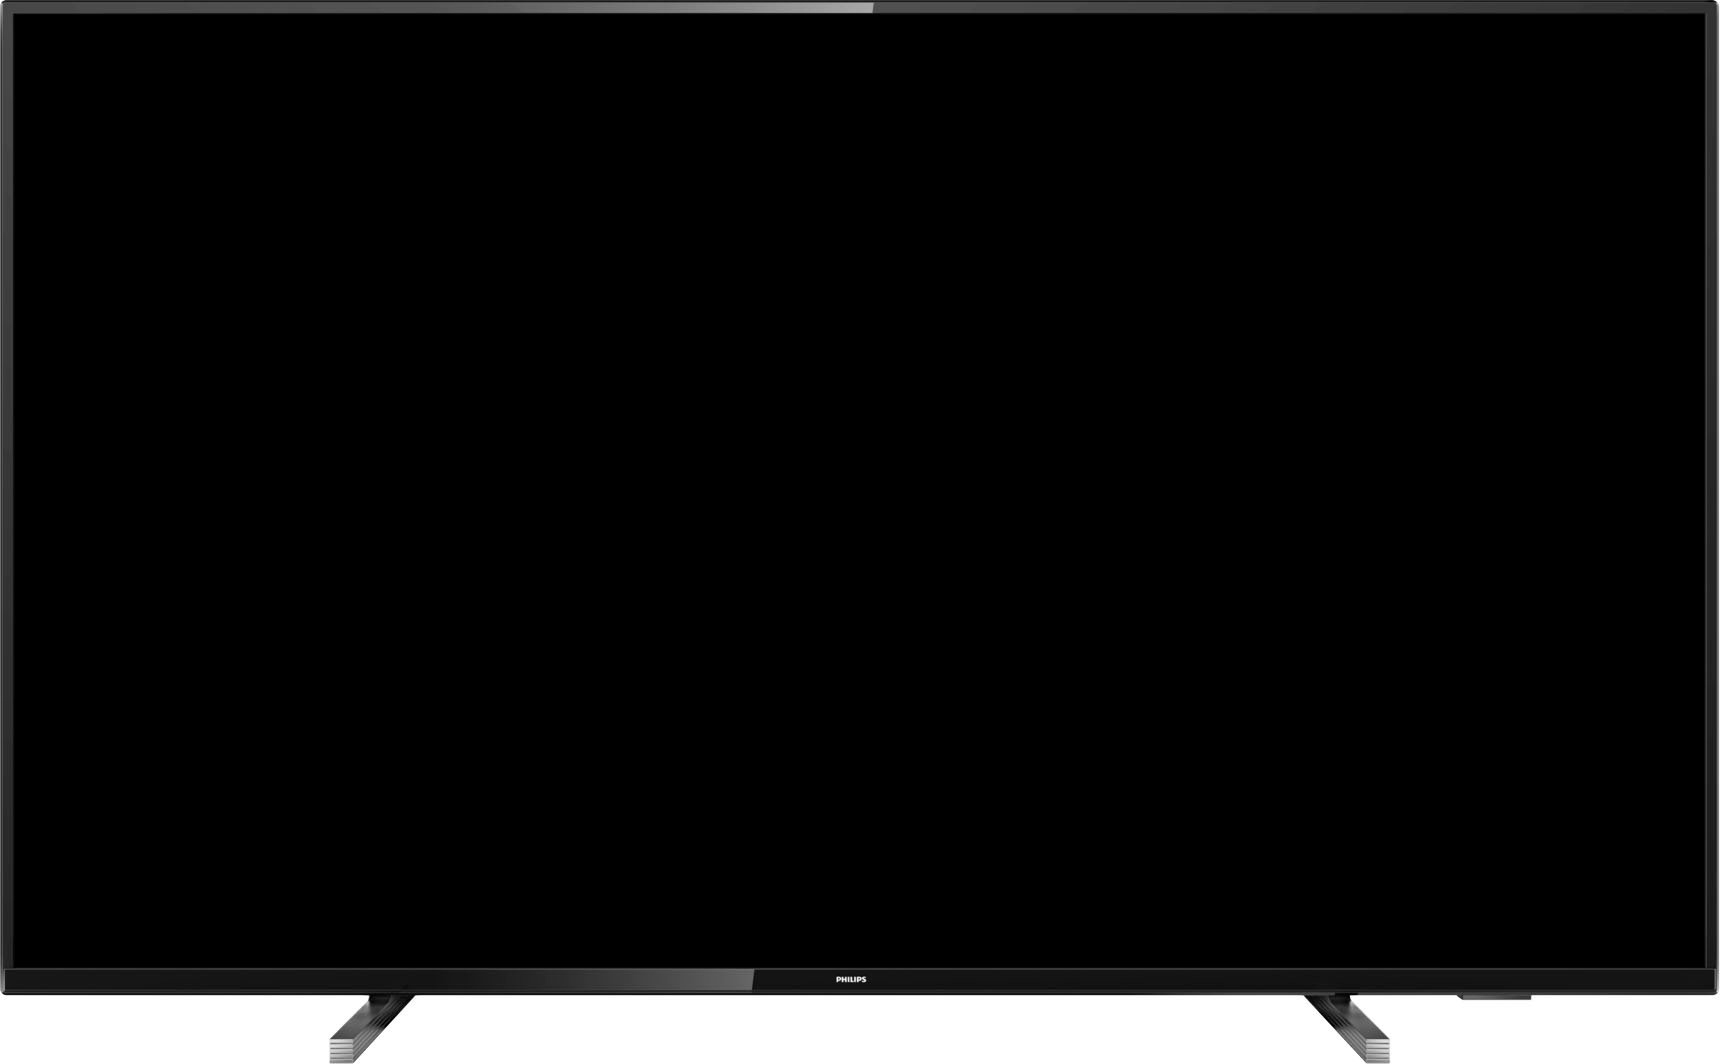 a blank television that probably doesn't need rebooting